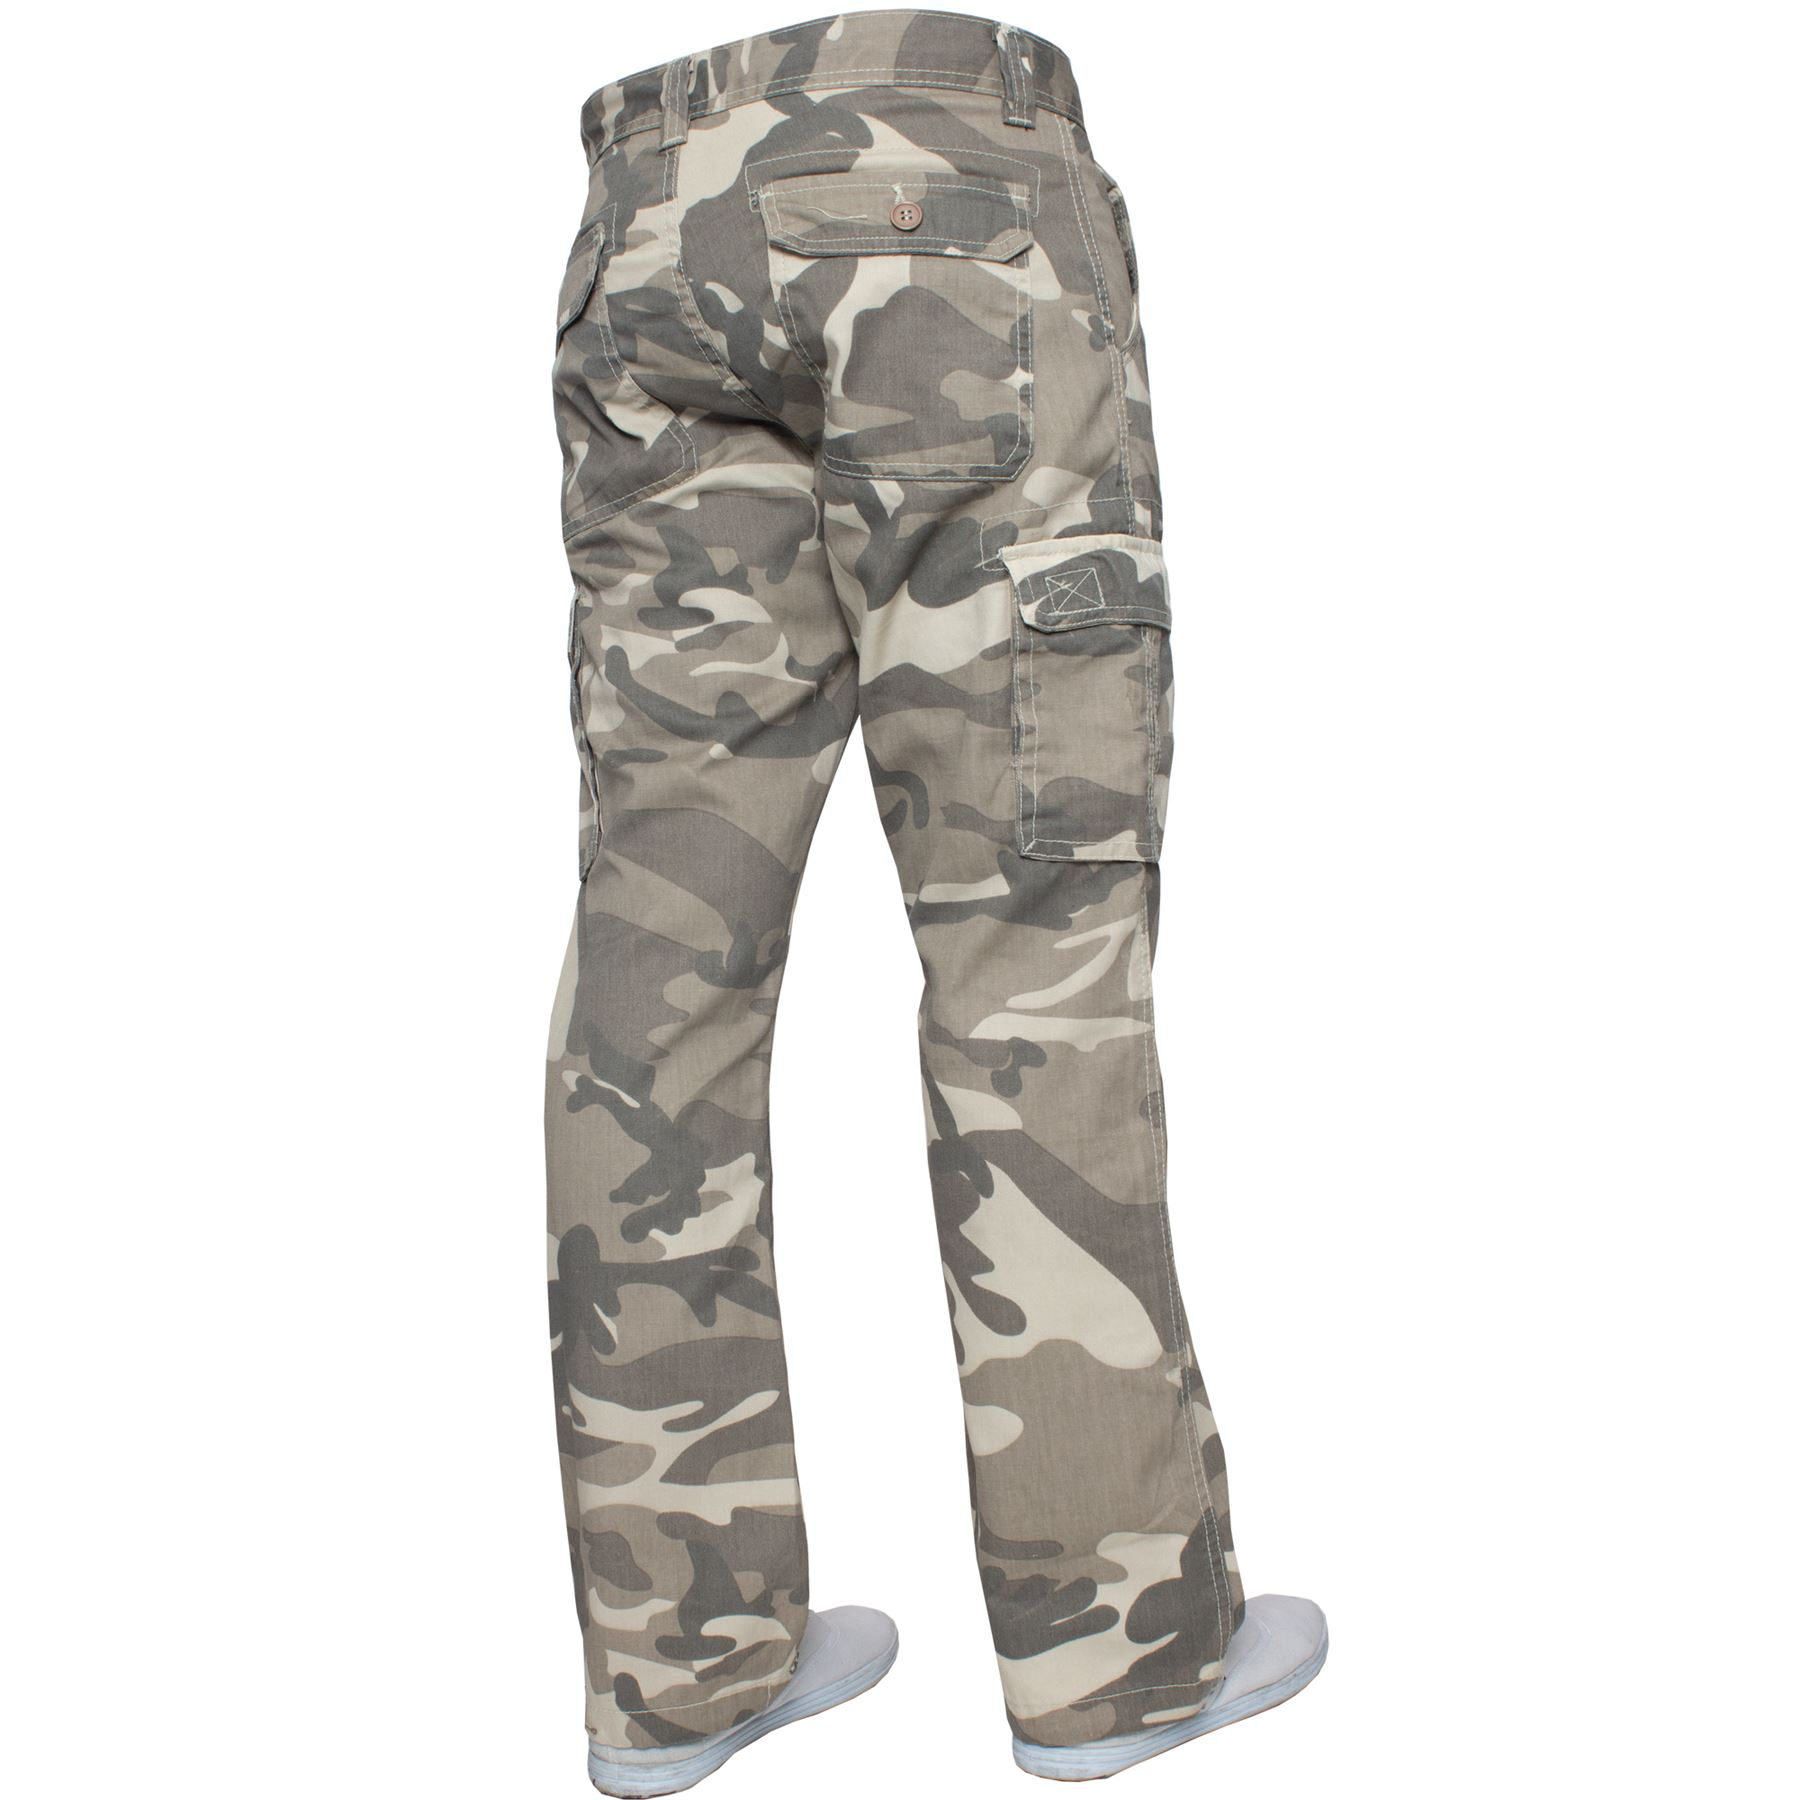 Kruze-Mens-Military-Combat-Trousers-Camouflage-Cargo-Camo-Army-Casual-Work-Pants thumbnail 4